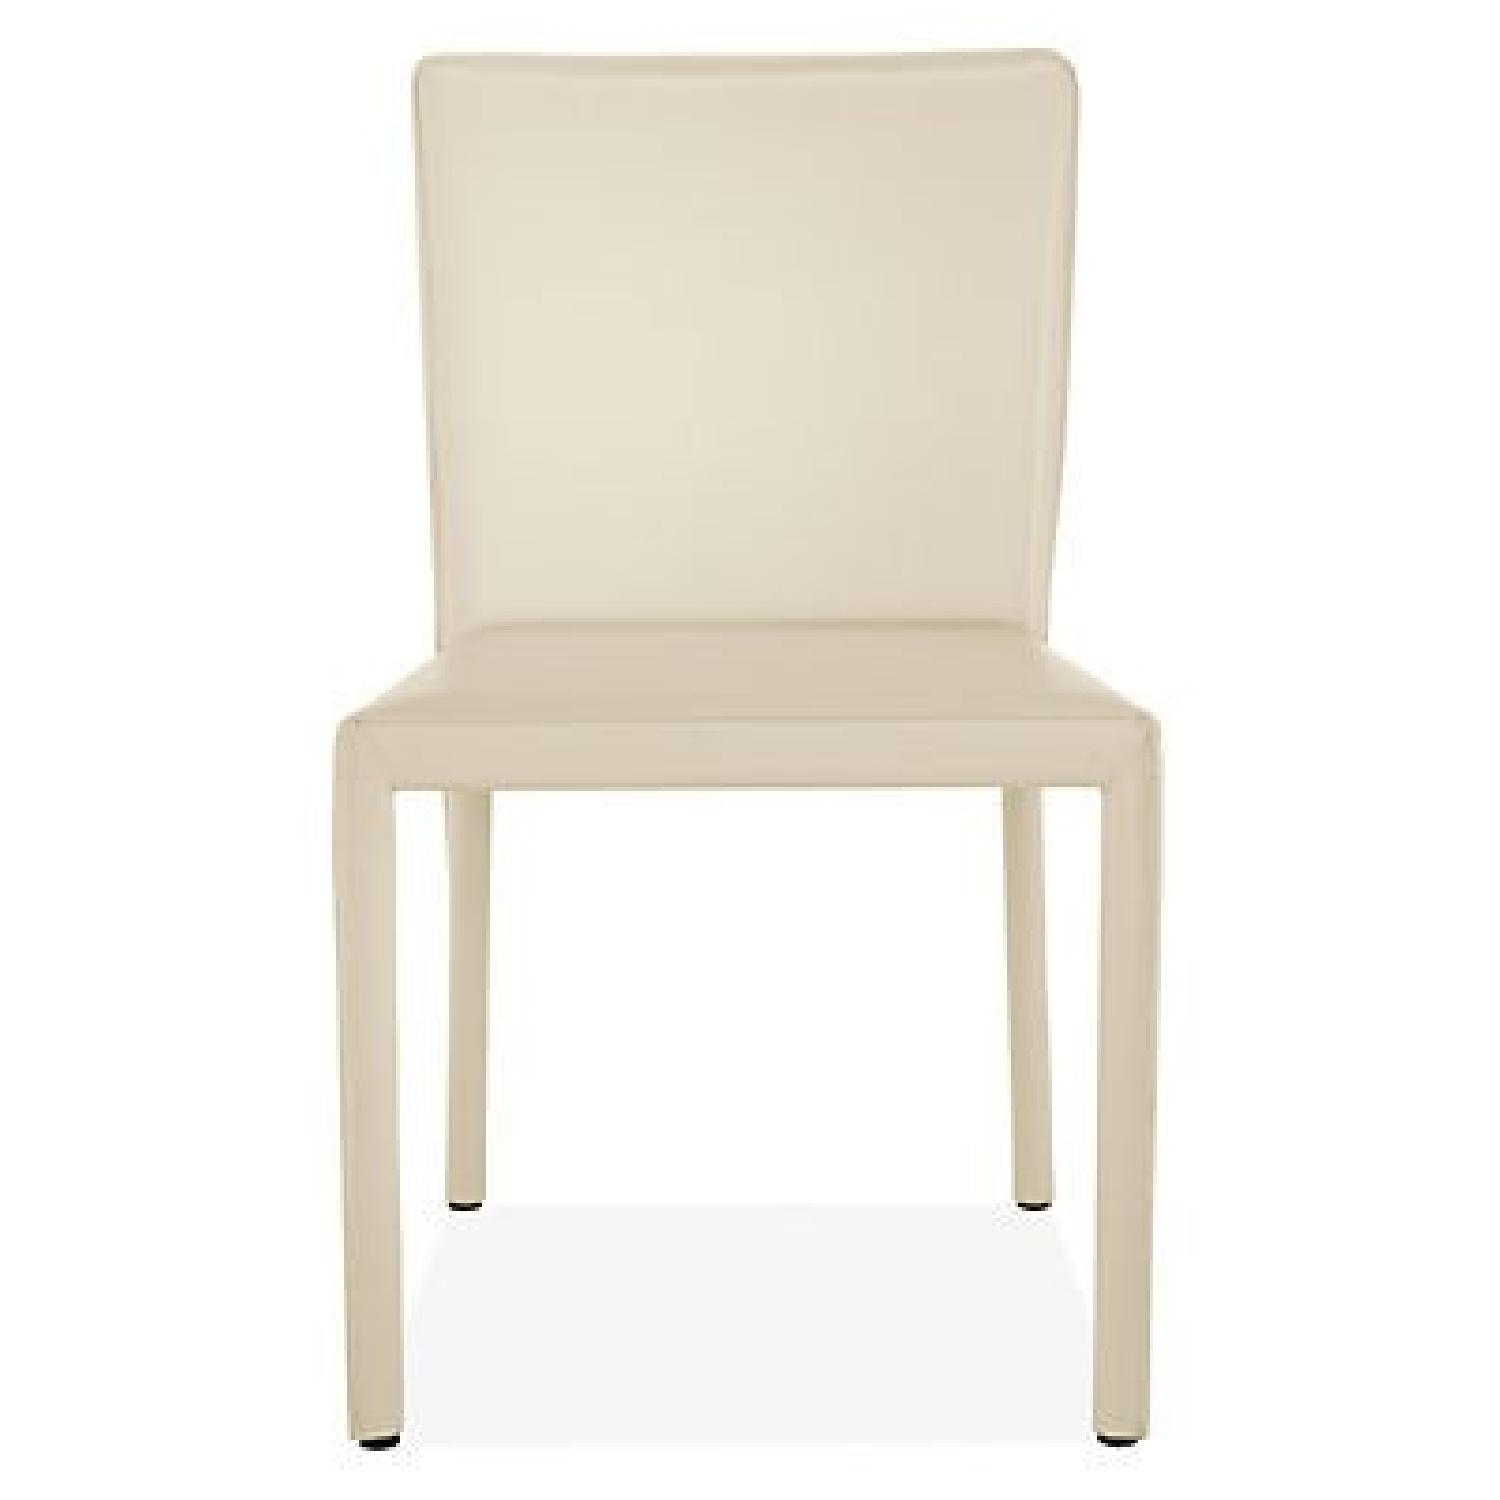 Room & Board Sava Dining Chairs in Ivory Leather